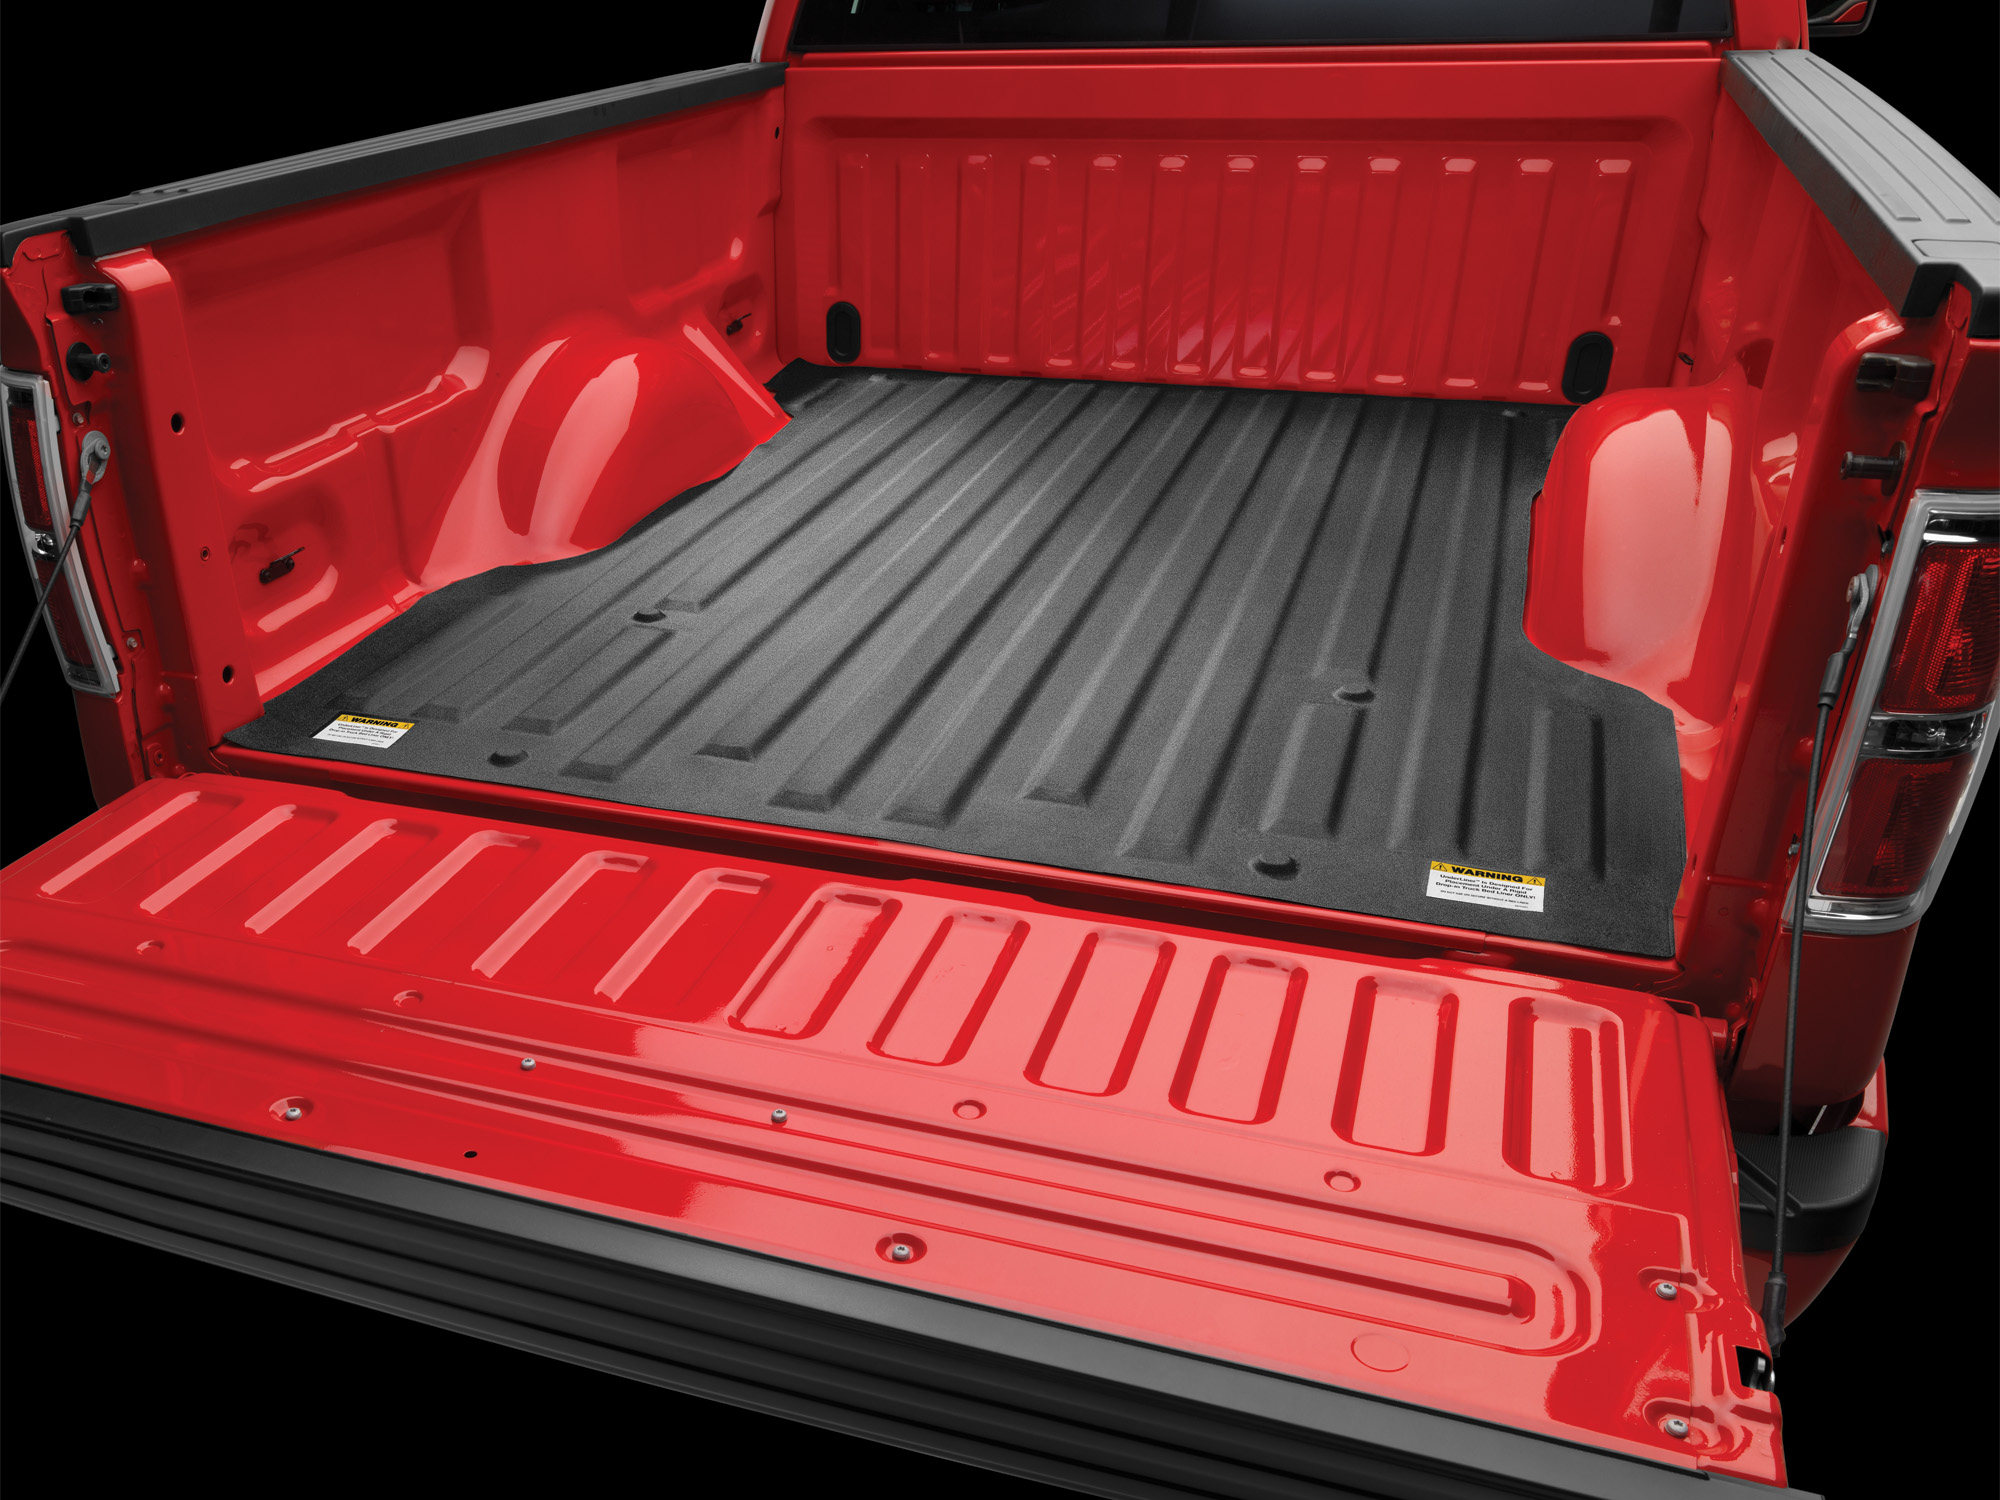 Youtube weathertech mats - Underliner Protective Base Layer For Pickup Truck Drop In Bed Liners